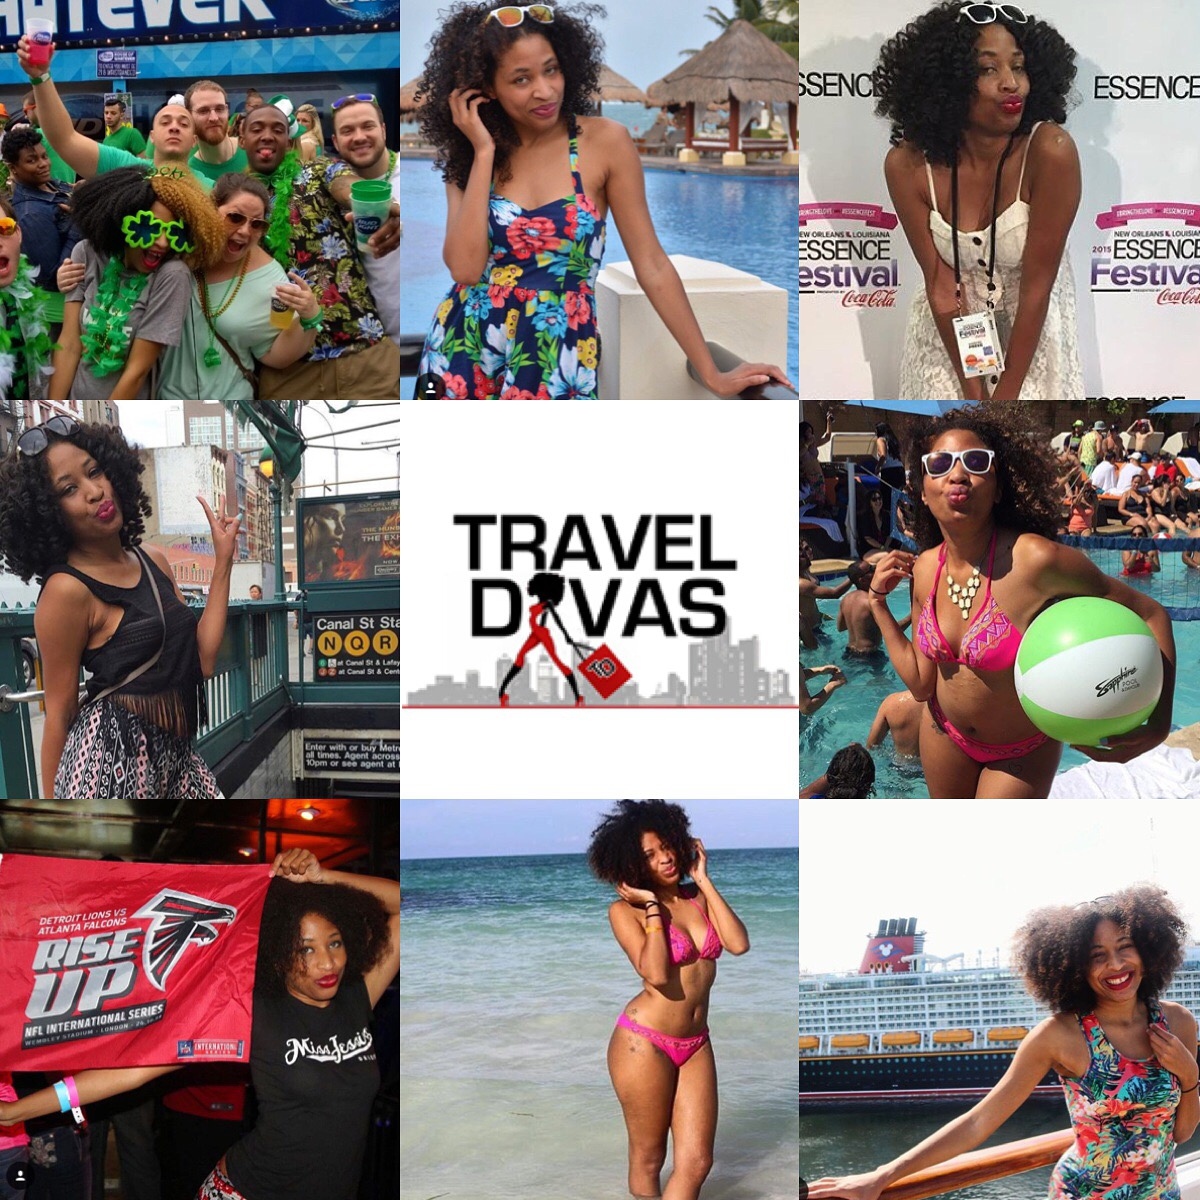 Travel Divas - Kiwi The Beauty